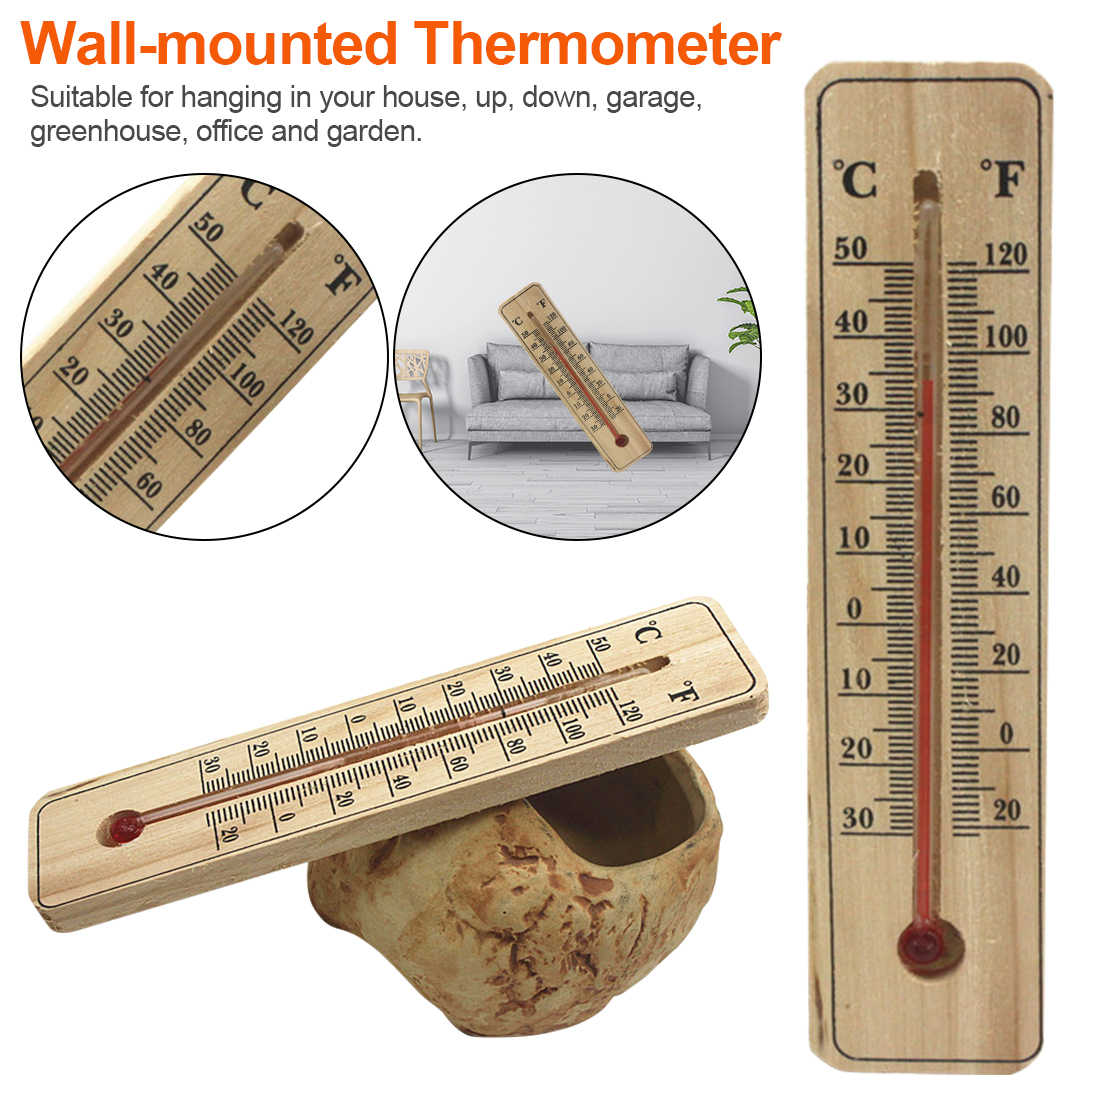 Wall Hung Thermometer Temperature for Indoor Outdoor Garden  Garage Office Room Hung Logger Thermometer Indoor